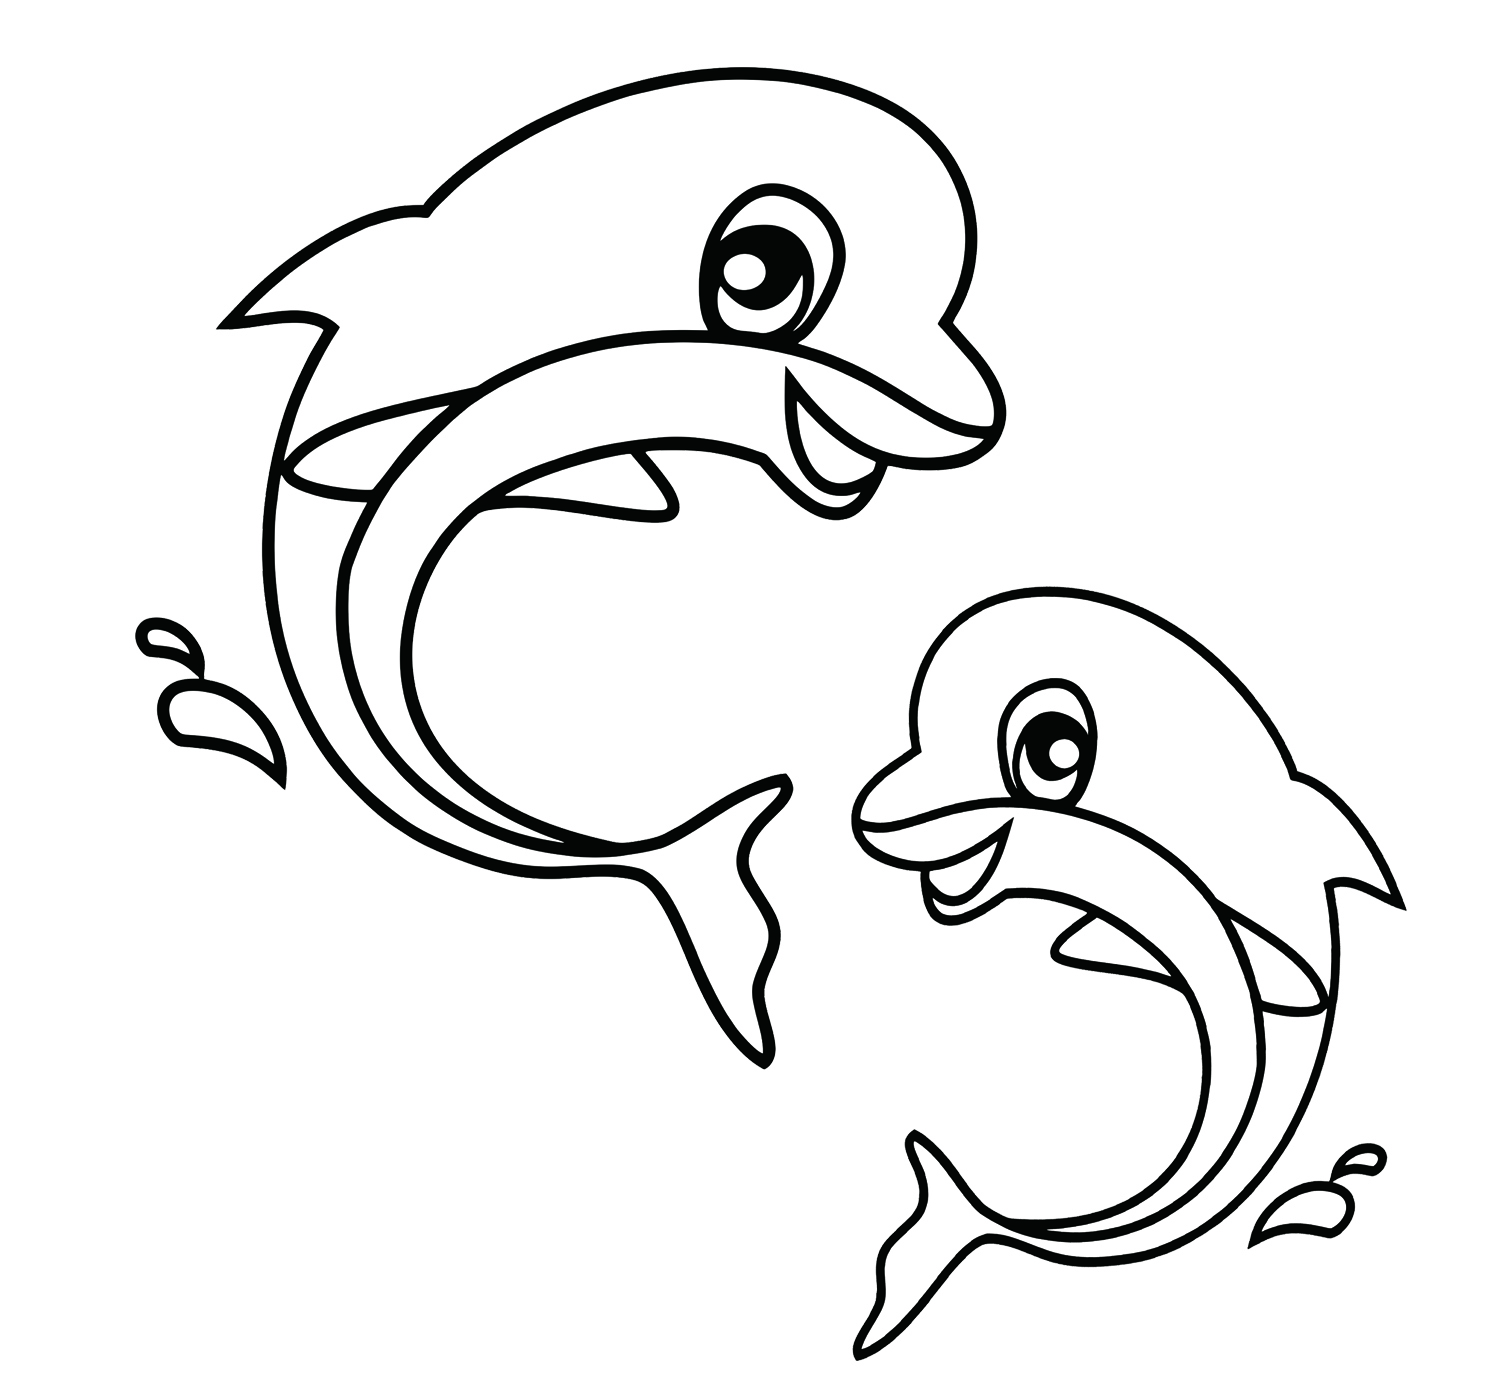 Clipart Animal Simple Line Drawing : Simple line drawings of animals clipart best